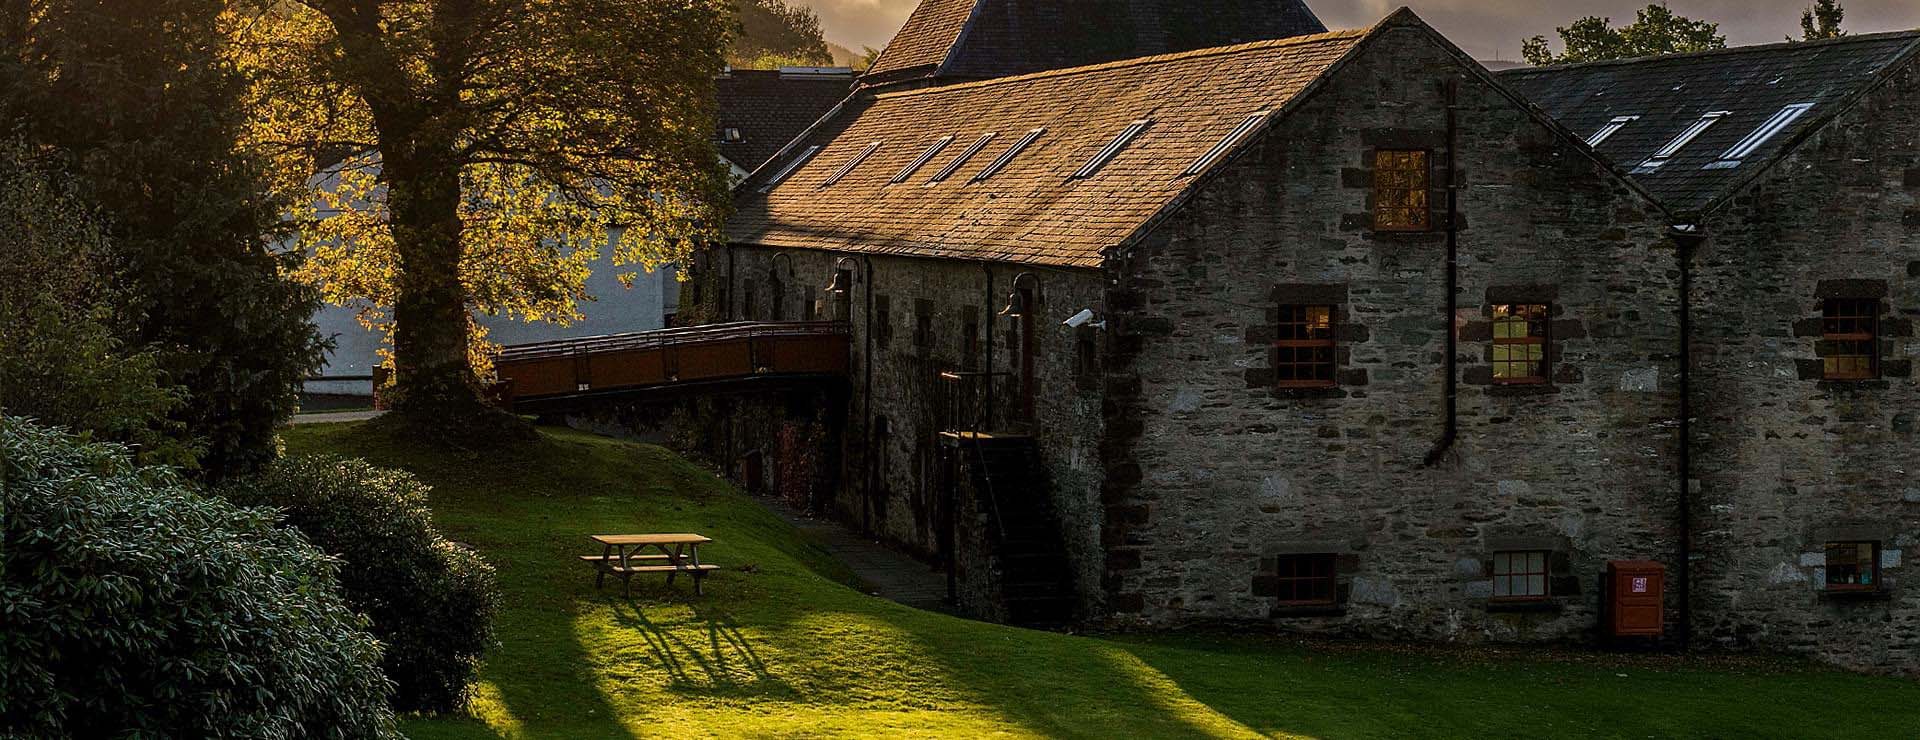 Welcome to Dewar's Aberfeldy Distillery. Highland Whisky Distillery and home of Aberfeldy single malt whisky and Dewar's blended Scotch whisky